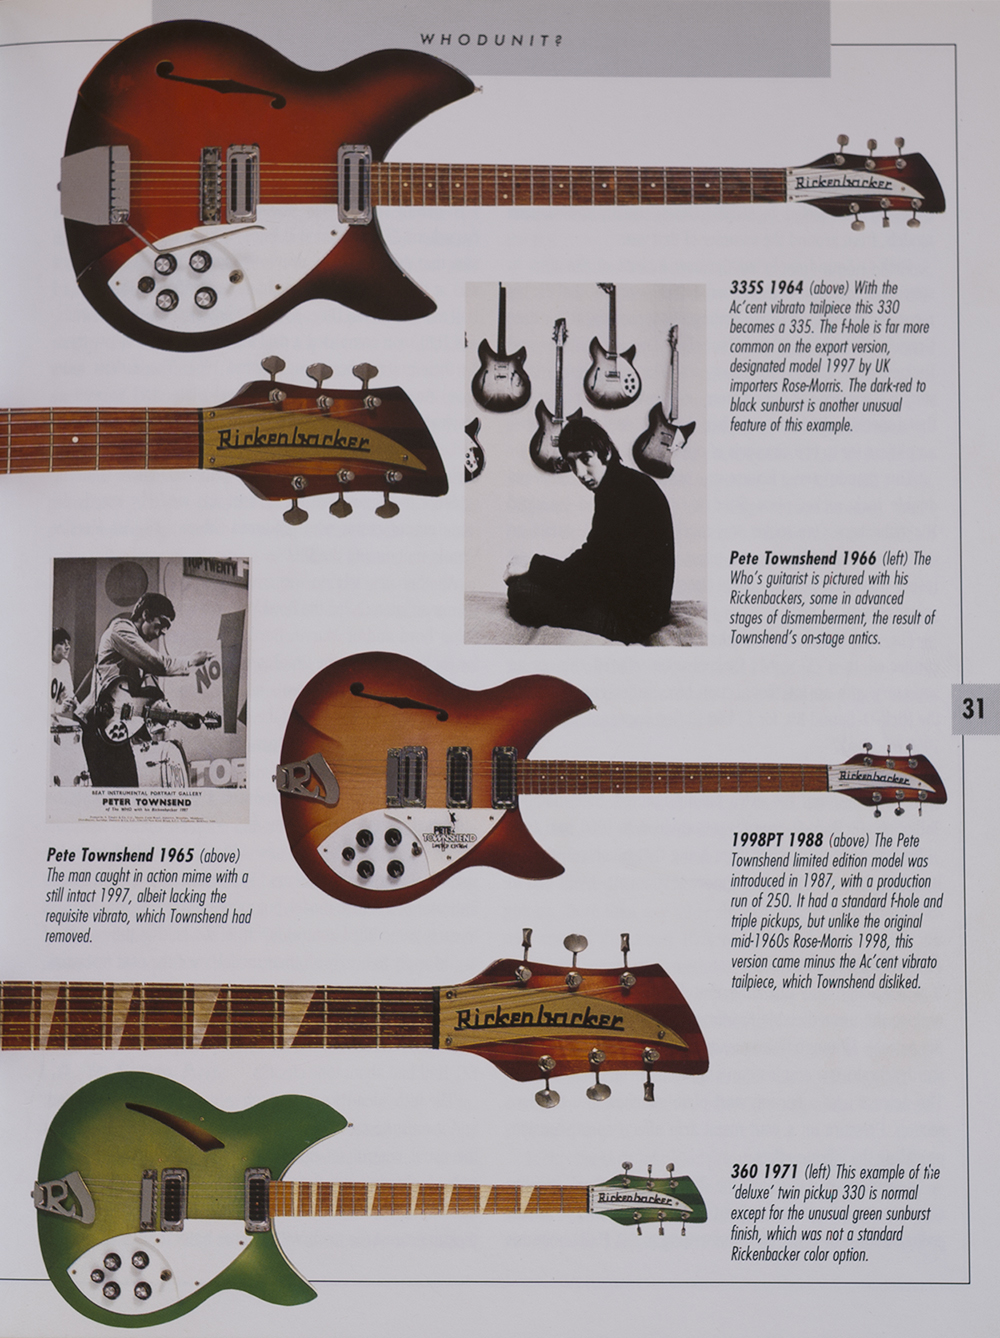 the guitar is featured on page 31 in the book